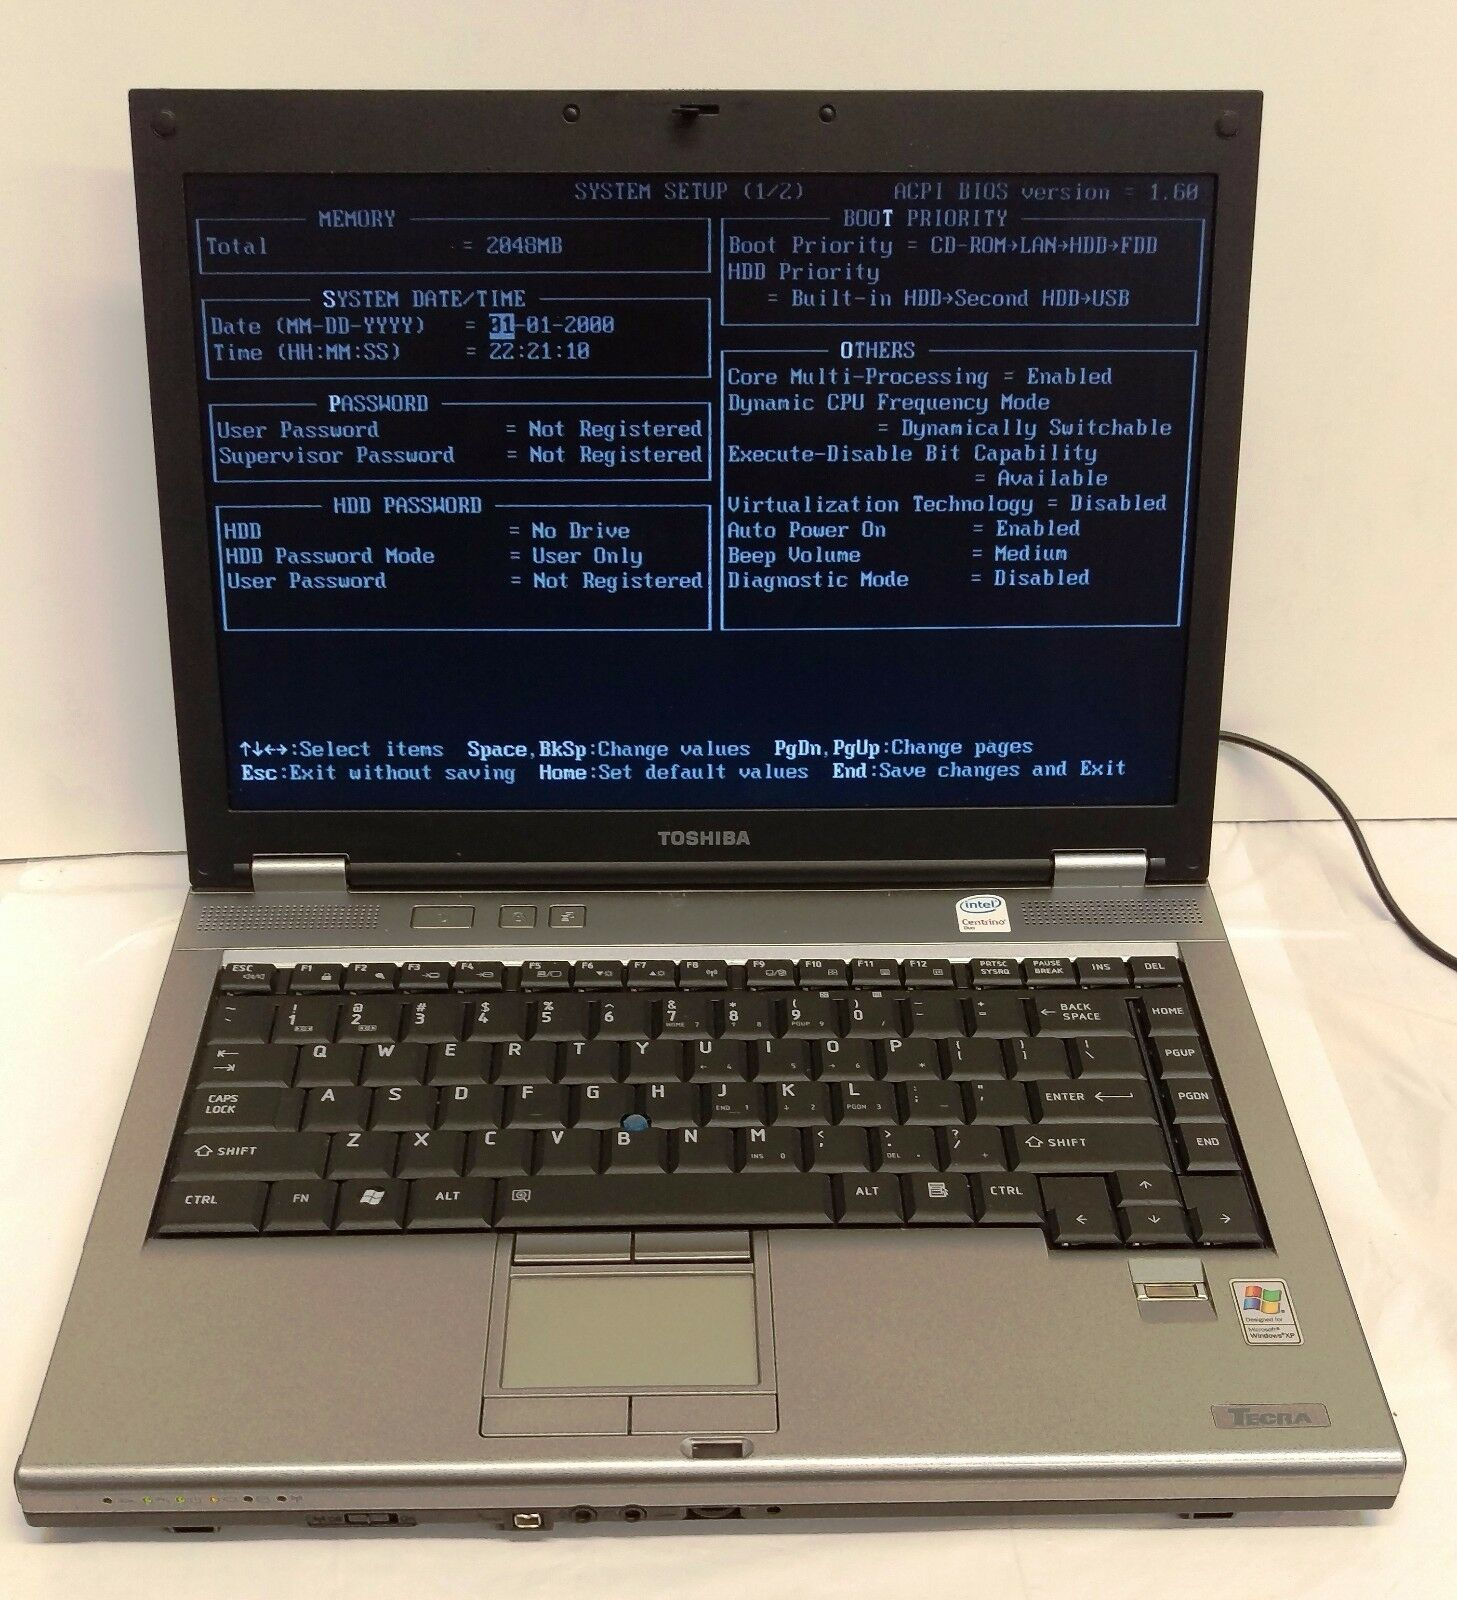 "TOSHIBA TECRA M9 14.1"", 2.0GHZ Core 2 Duo, 2GB RAM, NO HDD"